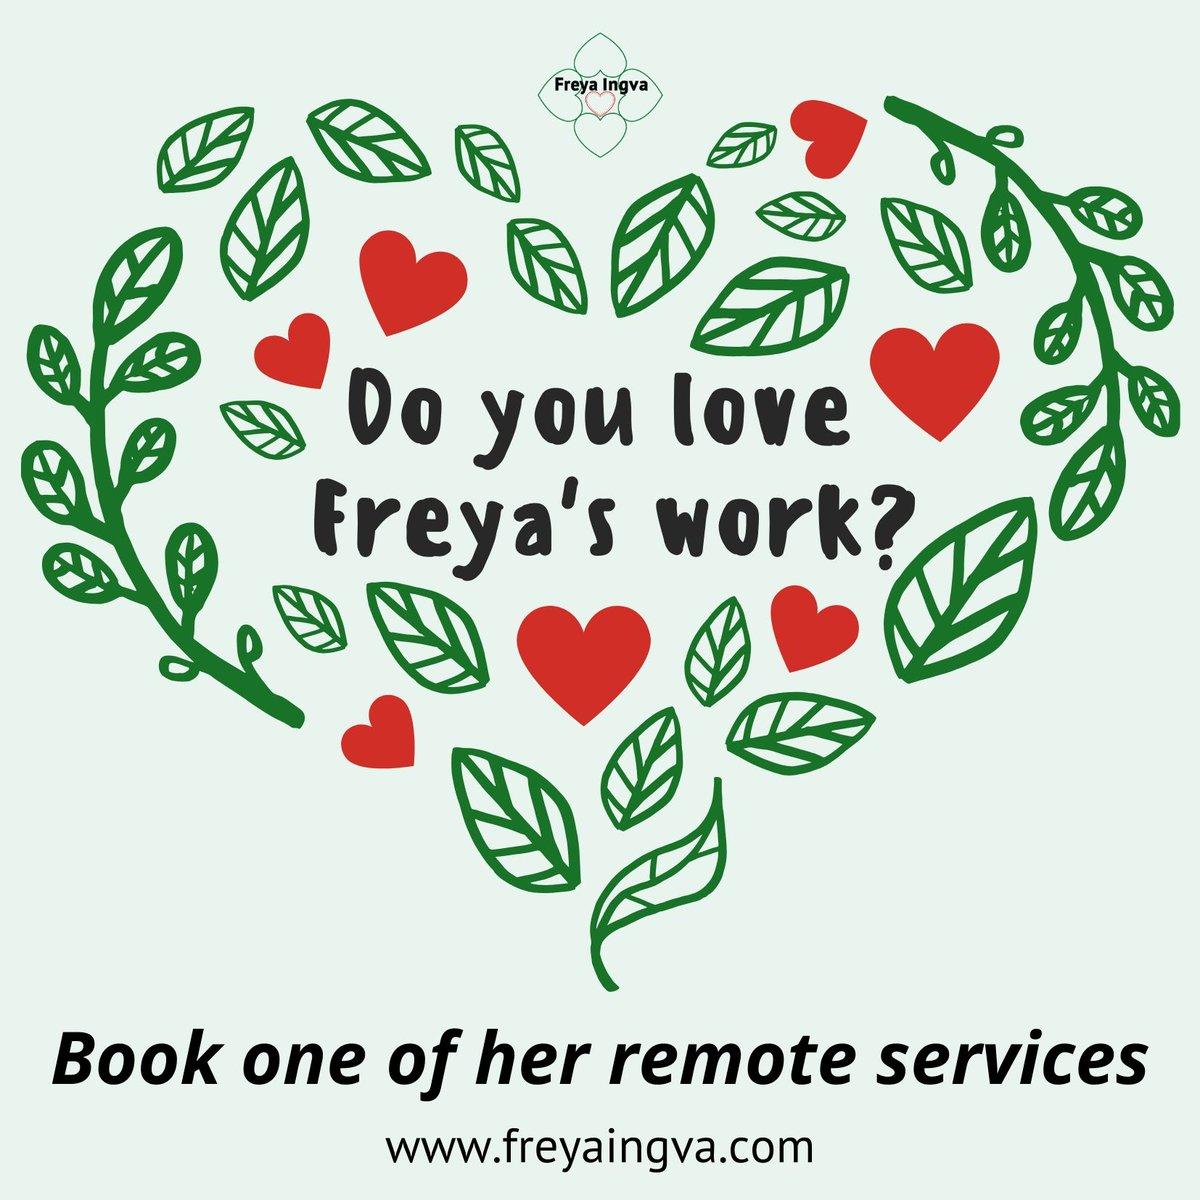 Do you love Freya's work? Remote bespoke #dowsing, #oracle session, #TeaLeafReading at your home Book now!  #consultation #privatesession #diviner #dowser #tealeafreader #divining #tealeafreading #experience #tea #afternoontea #teawisdom #wisdom